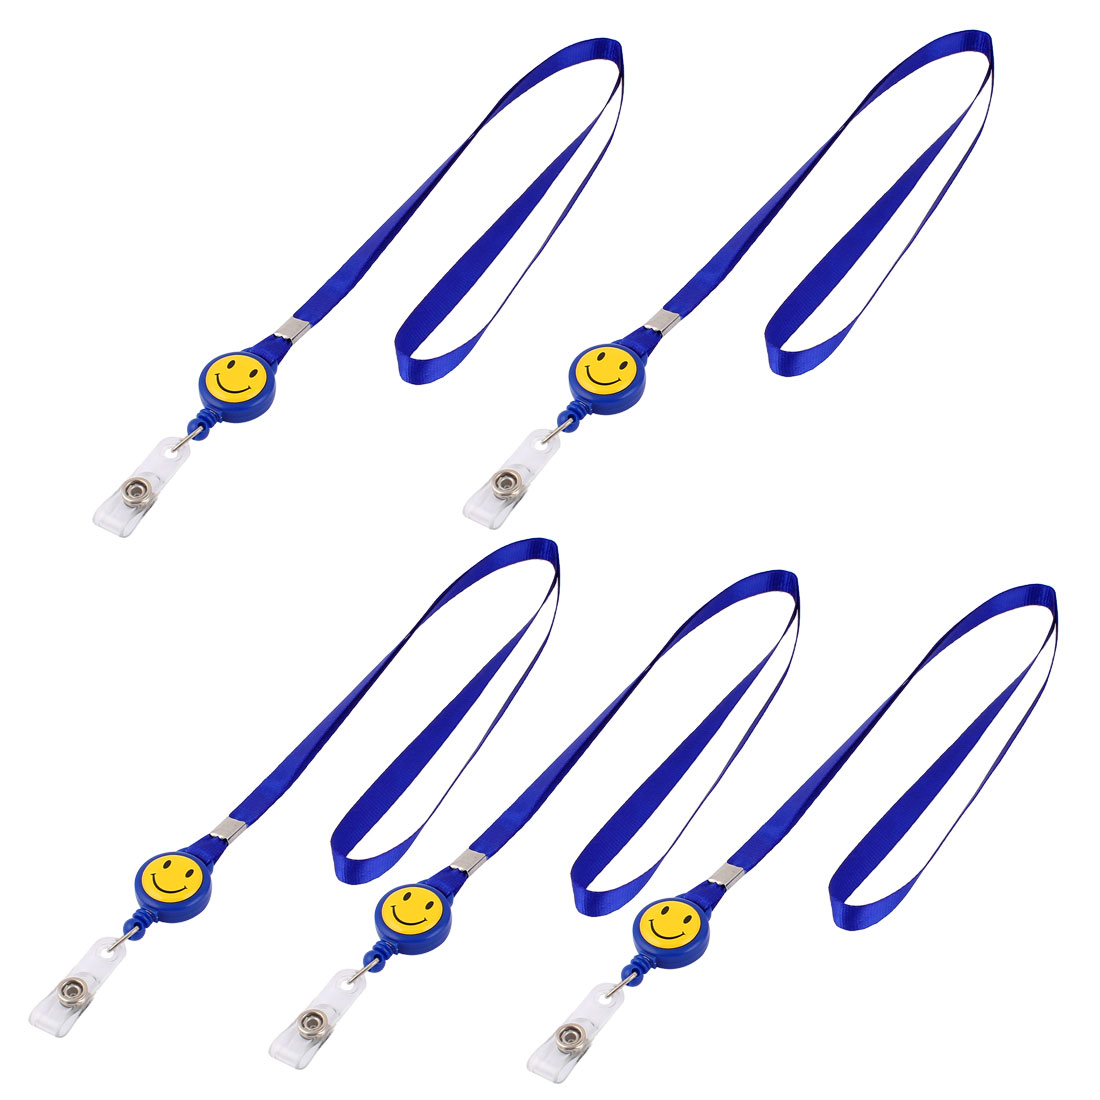 Smile Face Design Retractable Reel ID Card Lanyard Neck Strap 5 Pcs Blue